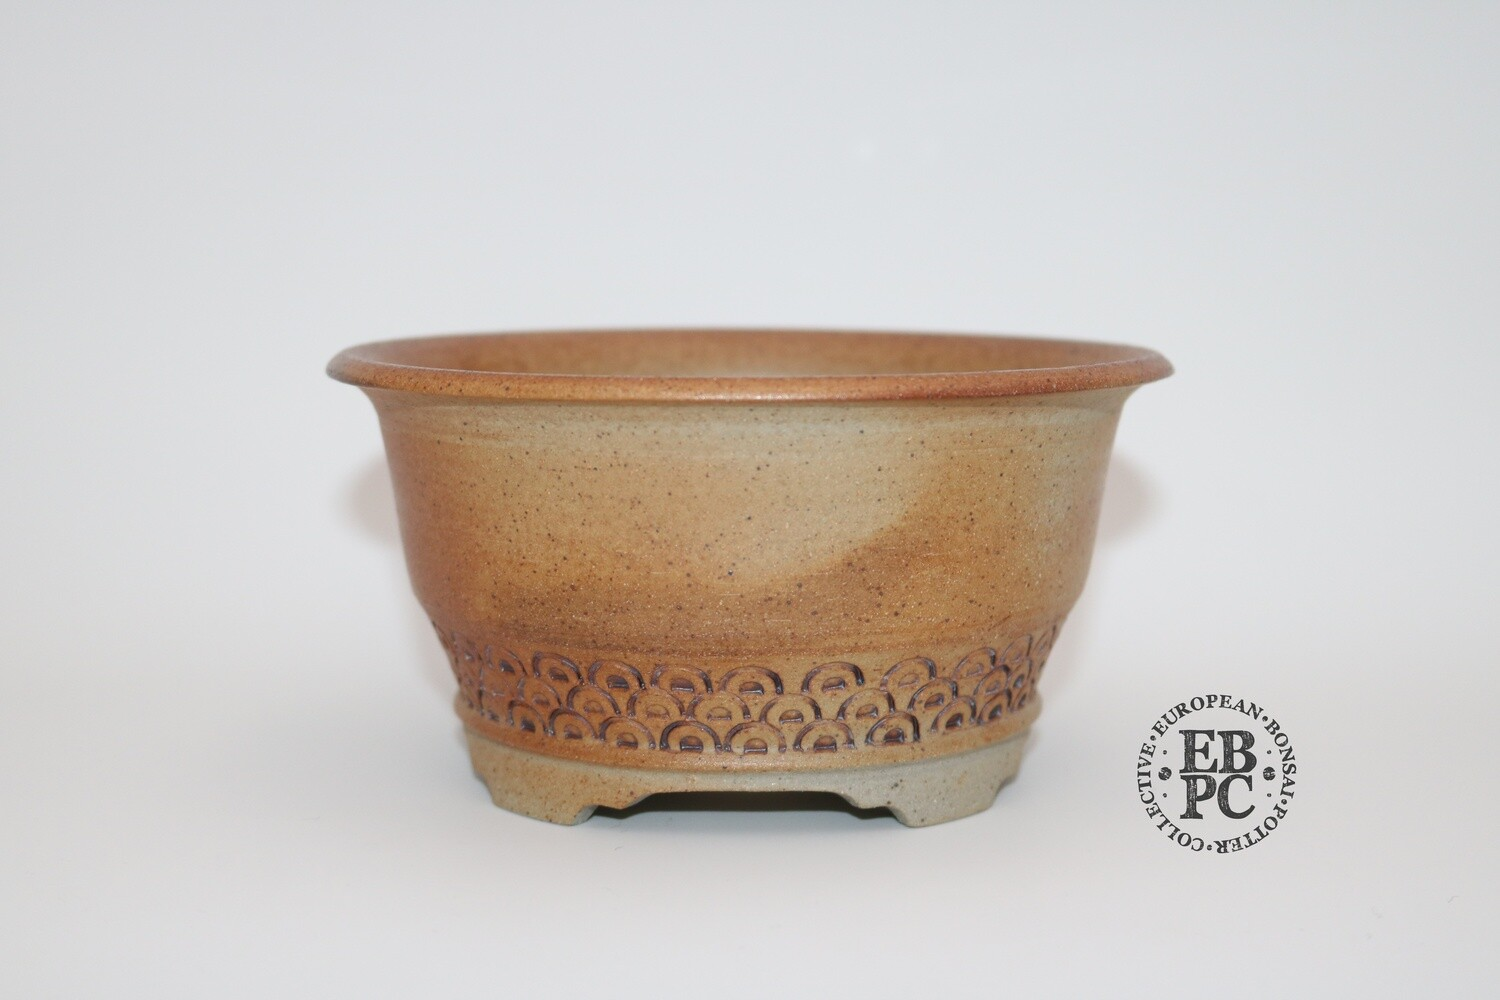 Gramming Pots - 15cm; Incised wave pattern; Round; Unglazed; Light Clay; Varied Hues of Brown; Wood-fired; Tomas Gramming